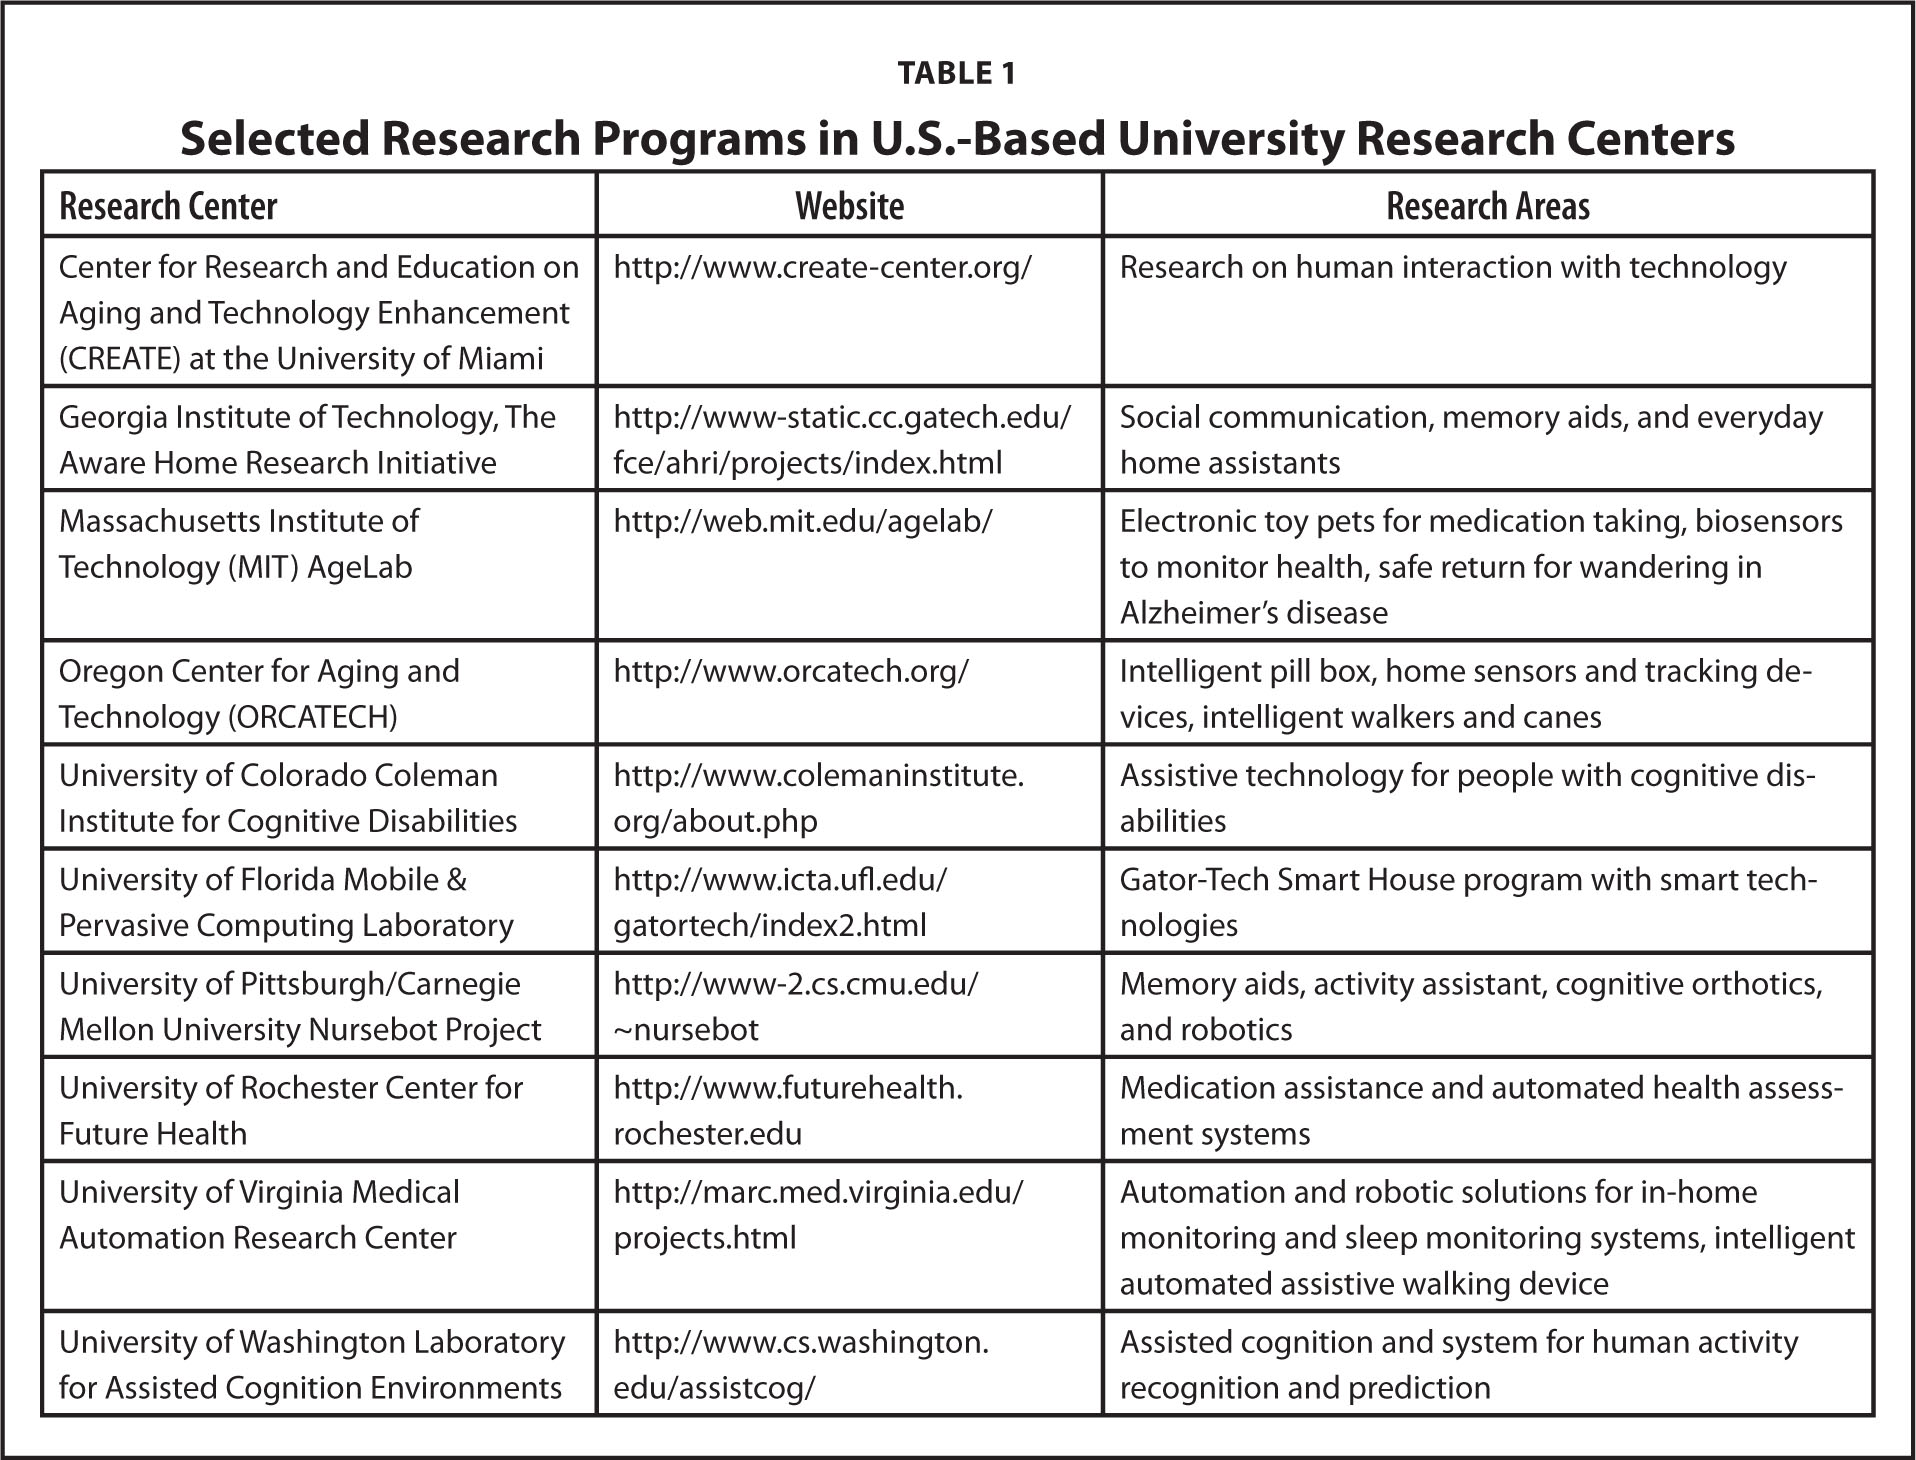 Selected Research Programs in U.S.-Based University Research Centers